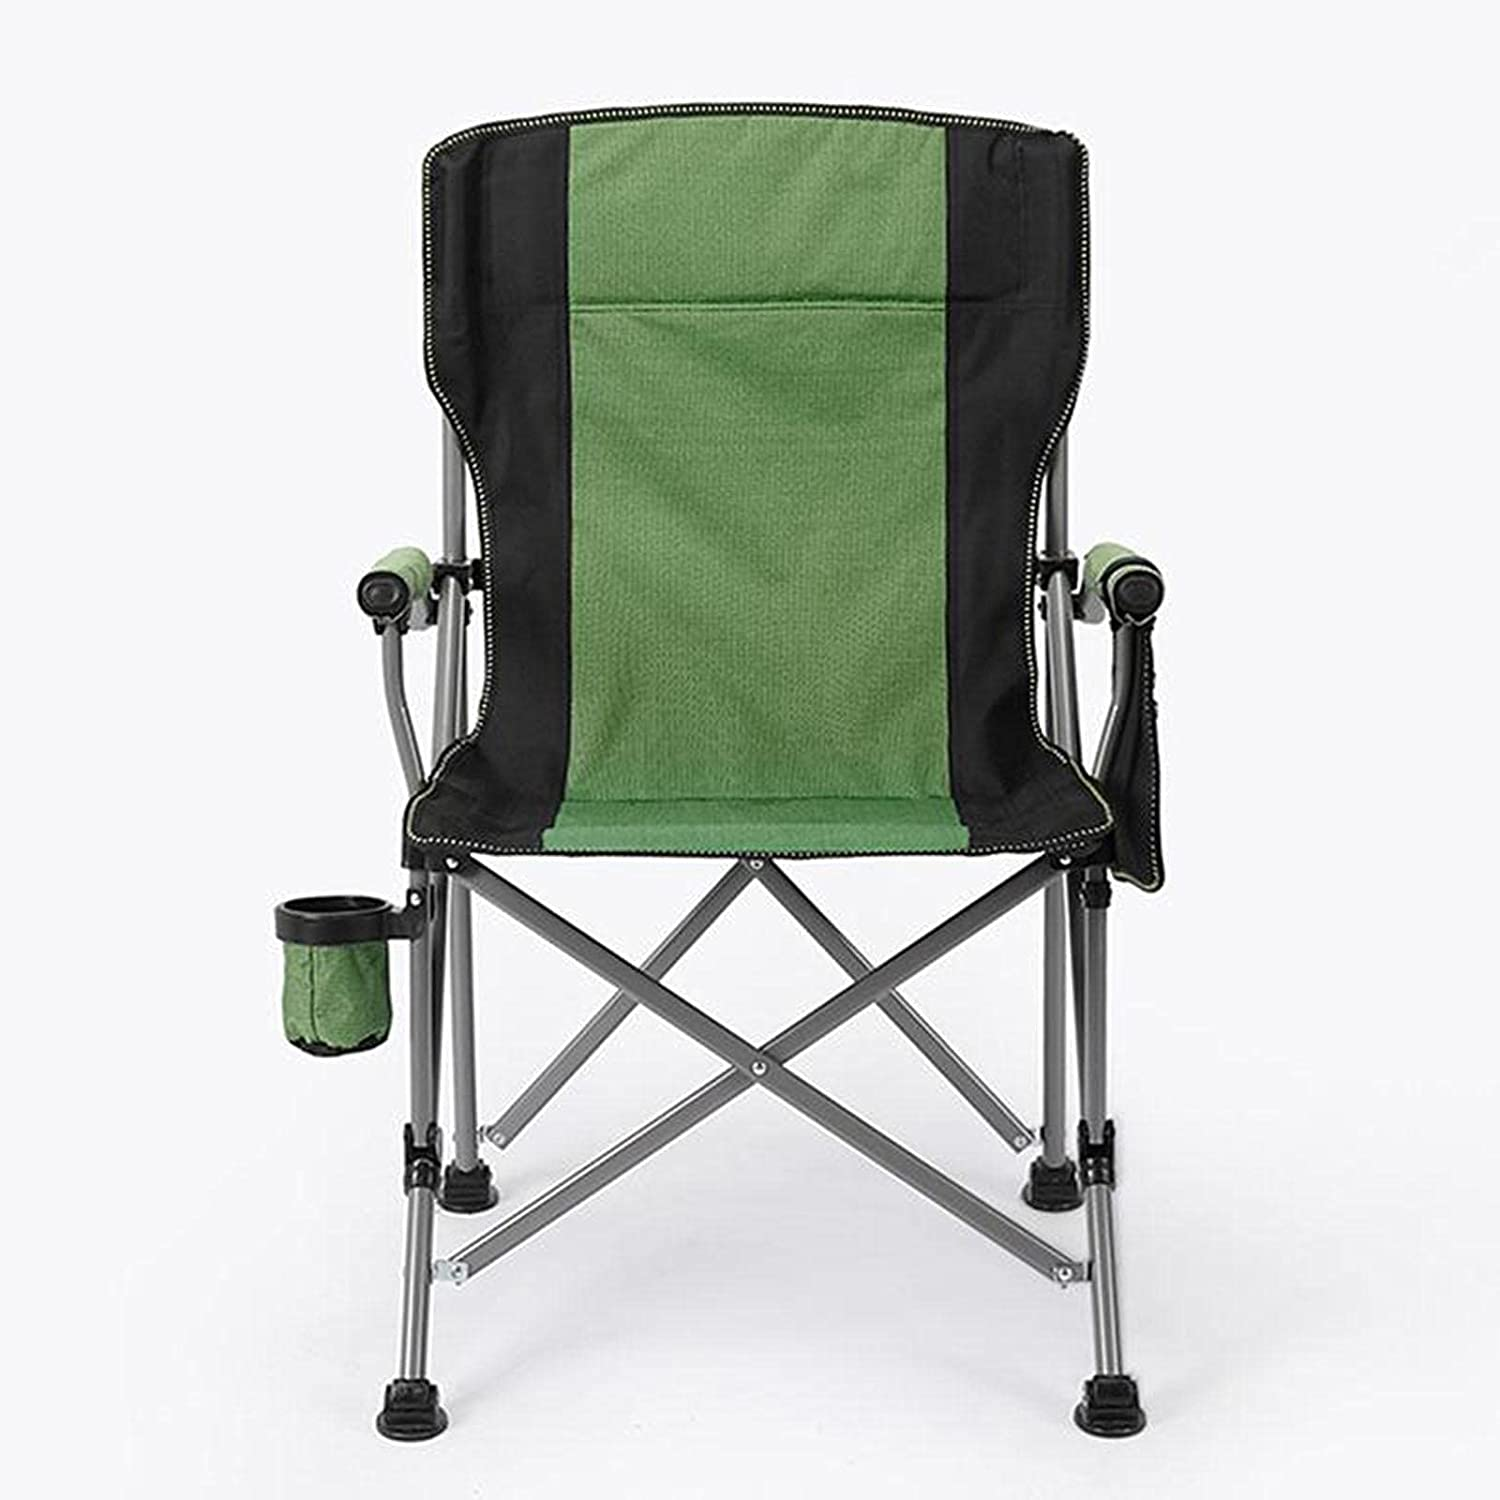 Spring new work AMYMGLL Outdoor Beach Chair Folding Bombing free shipping Leisure Di Fishing Portable